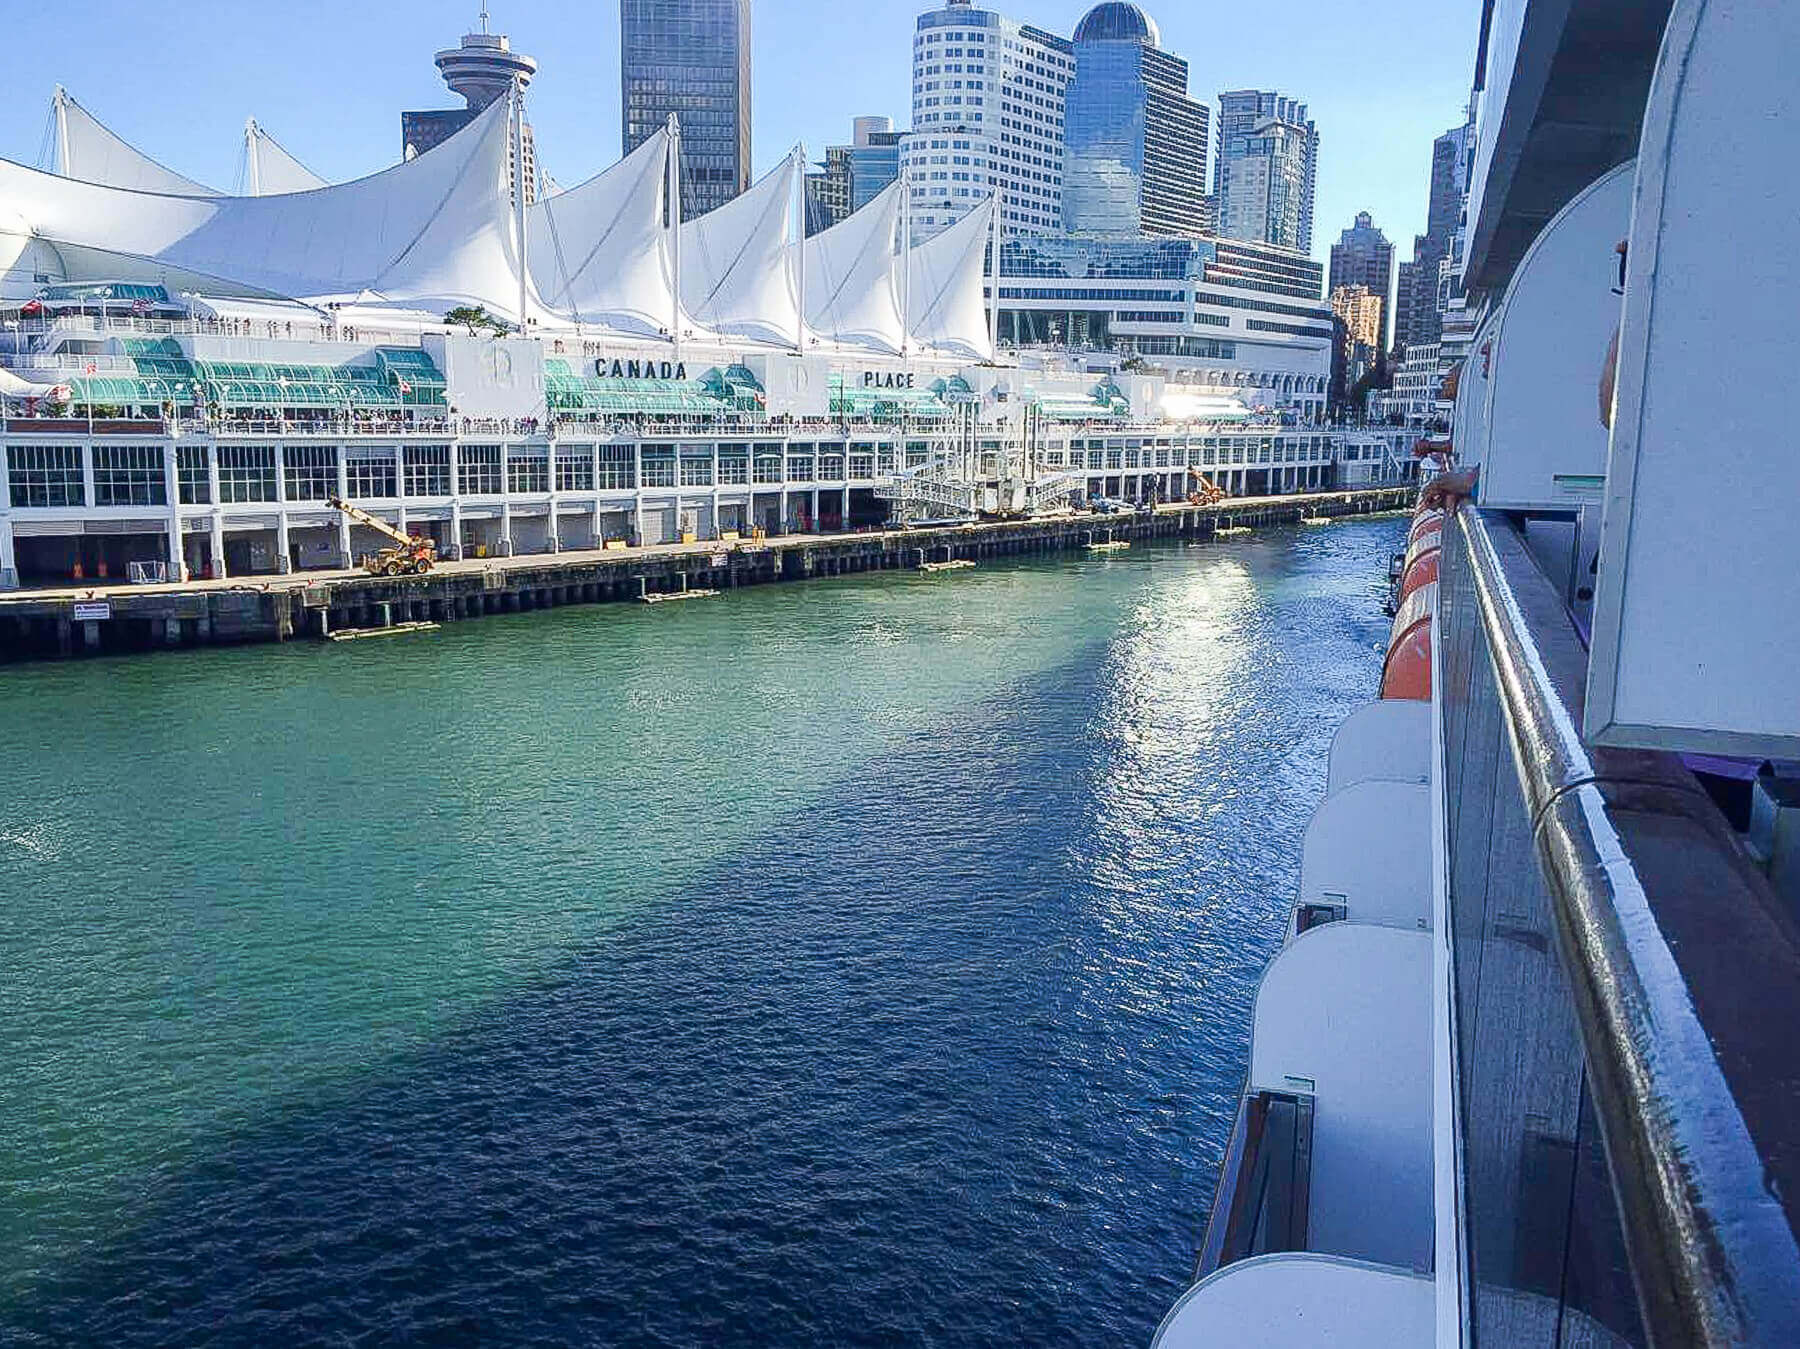 View of Canada Place from Cruise Ship